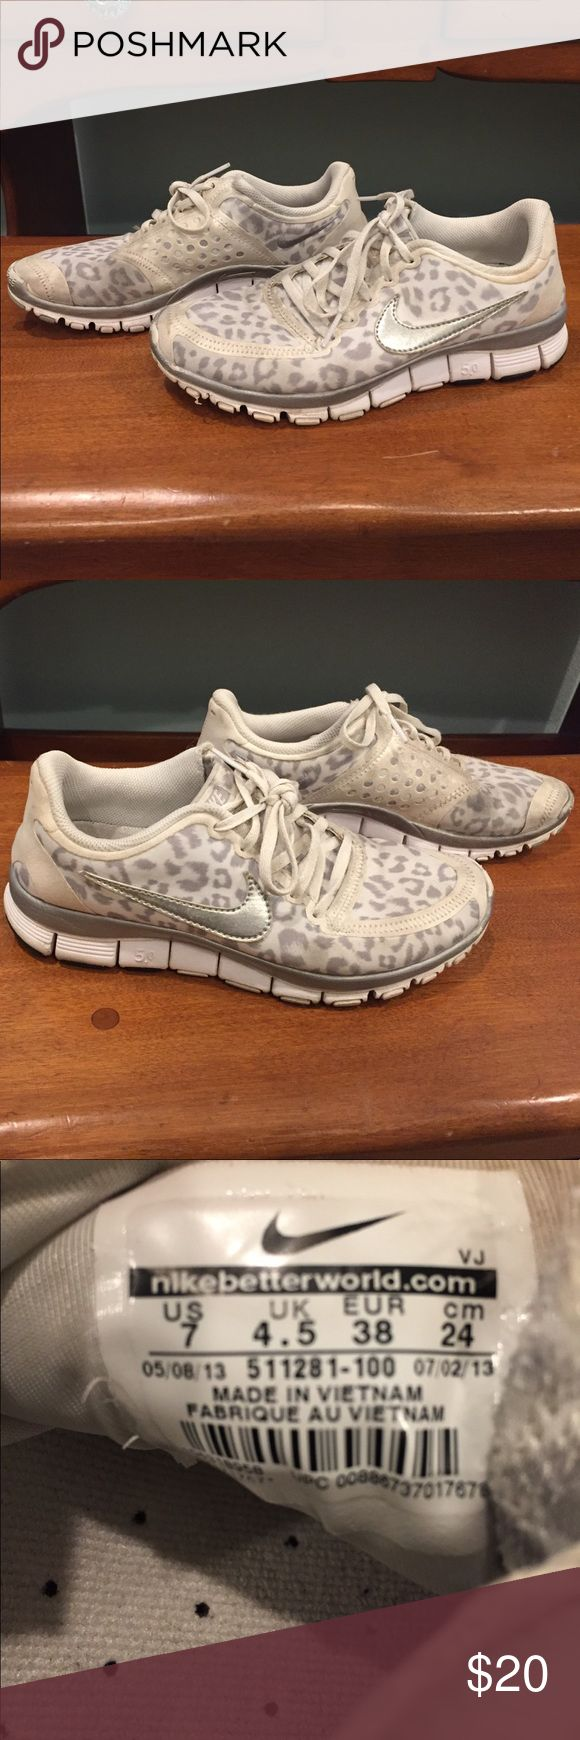 Gray and White Cheetah Print Nike Tennis Shoes They have been worn but are in very good condition! Such cute, exclusive NIKE shoes! Nike Shoes Sneakers